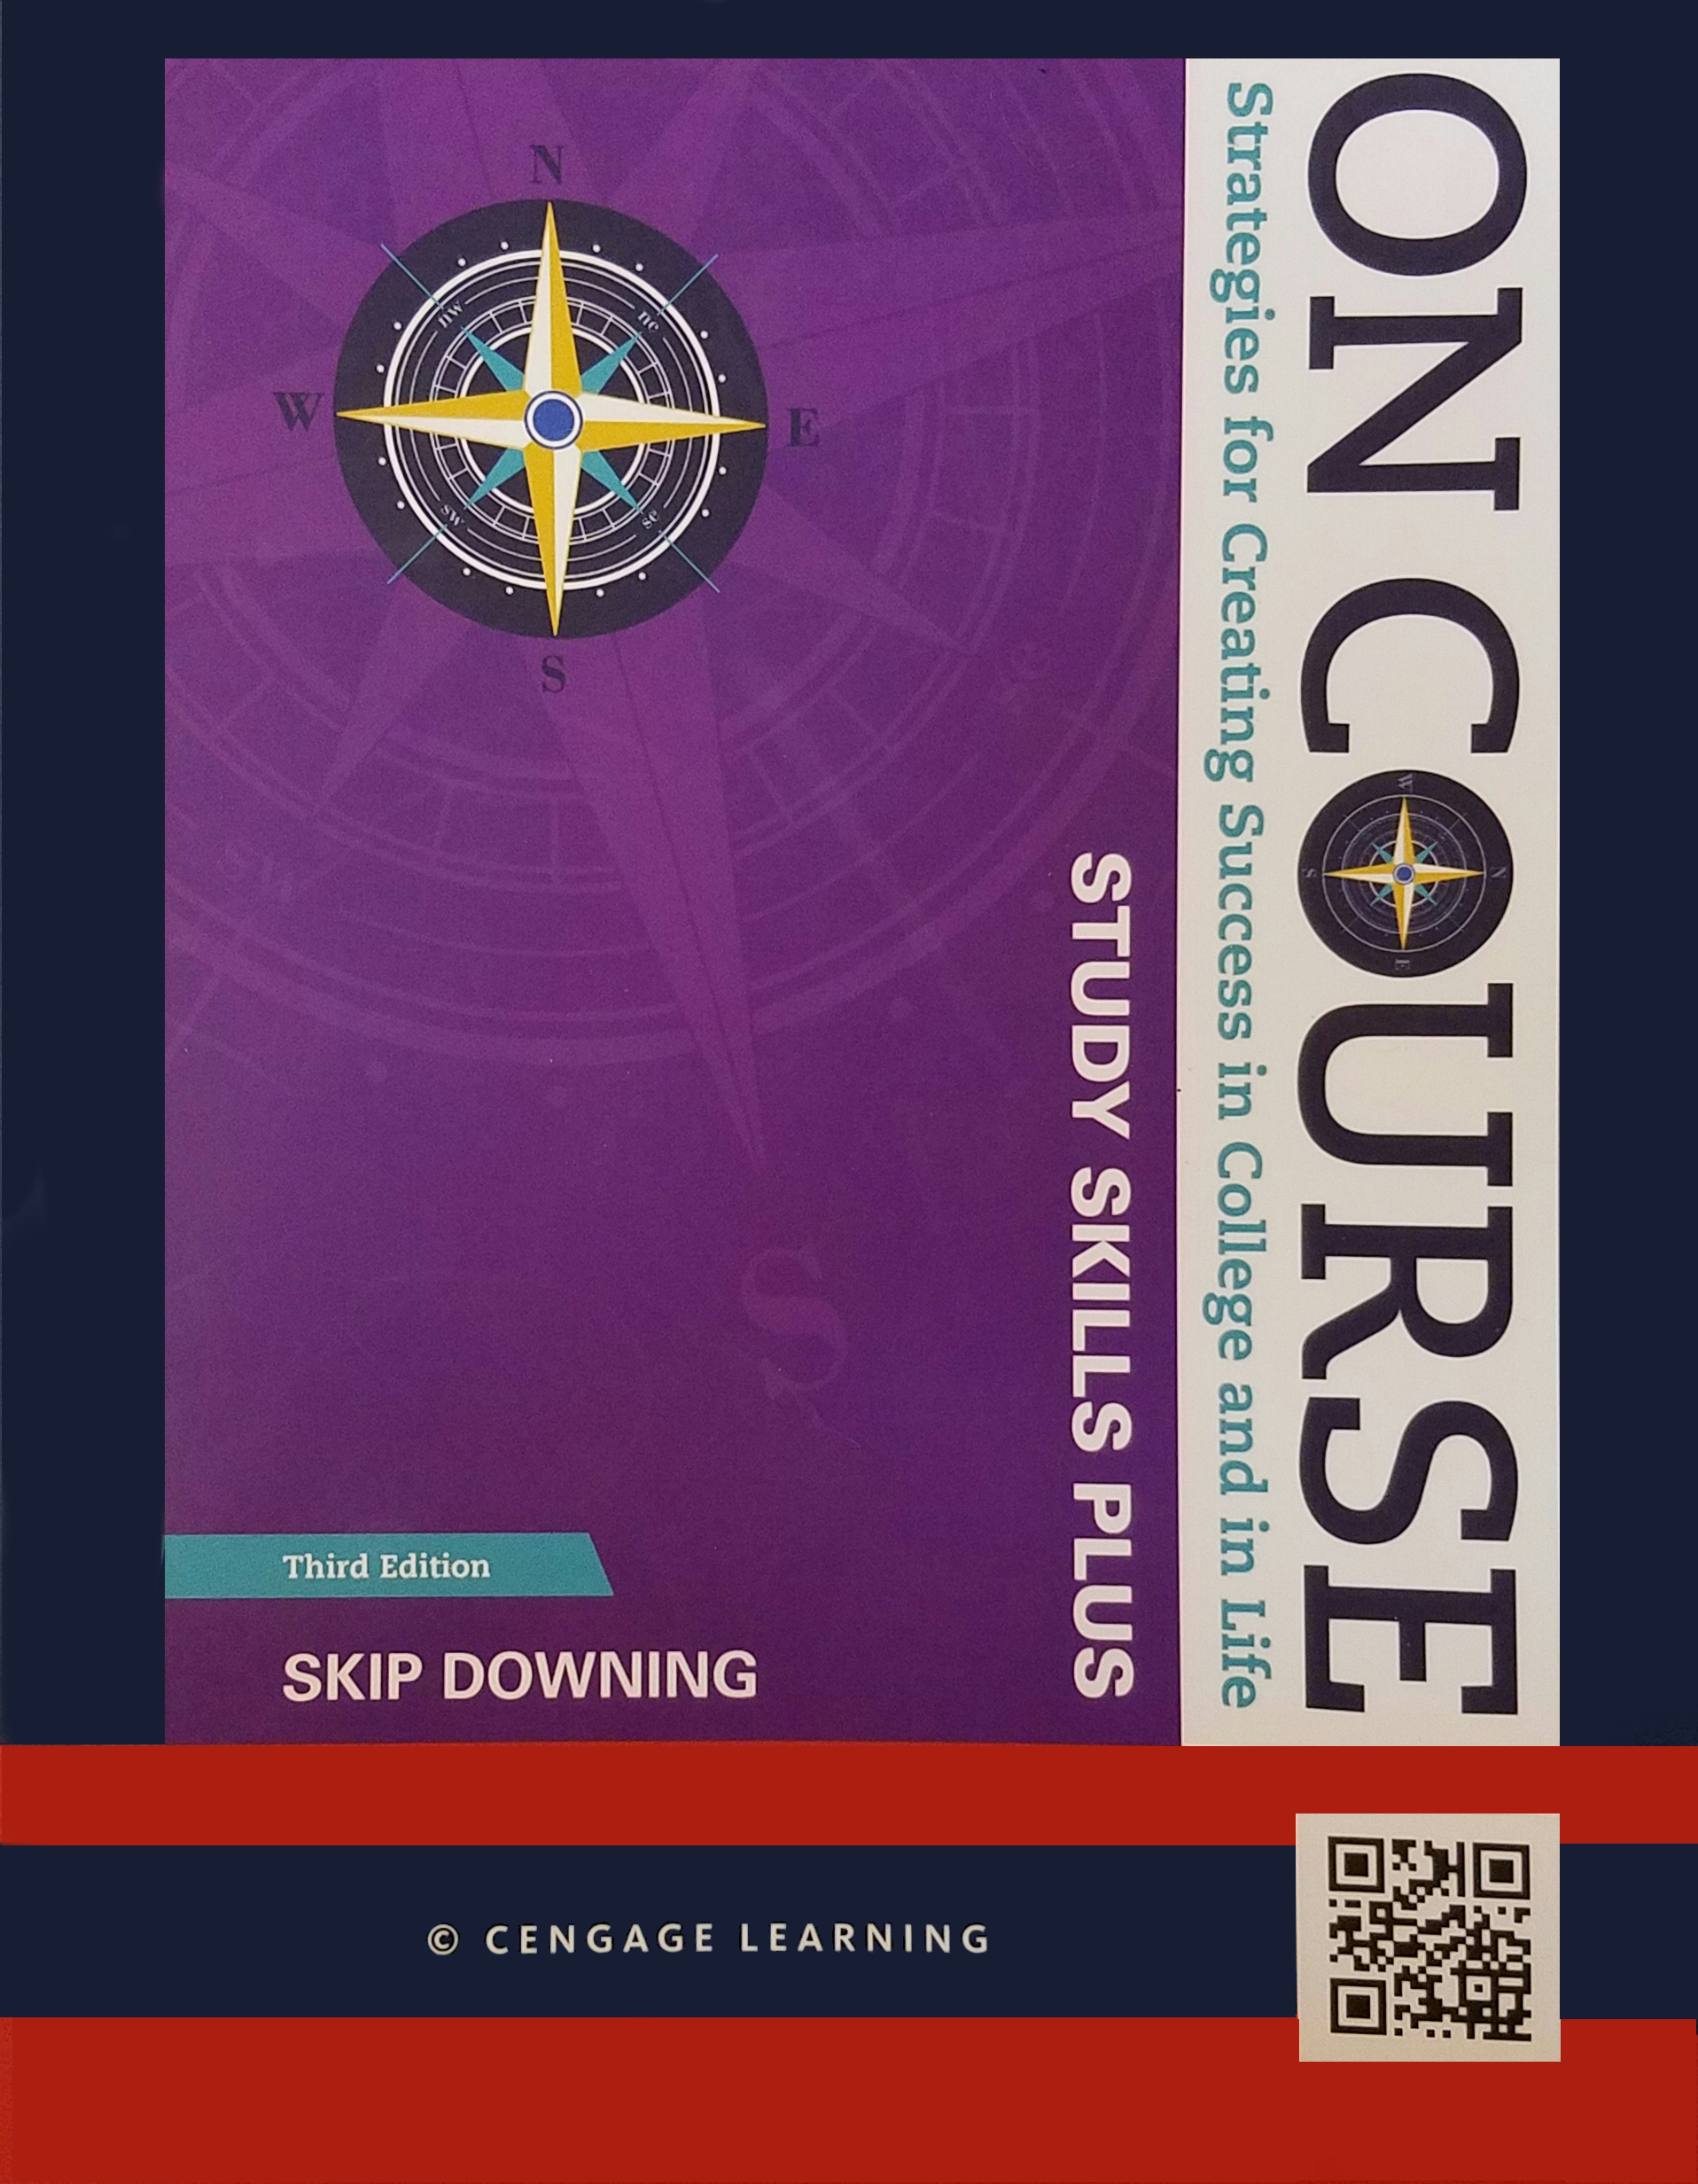 Cover Image of On Course Textbook